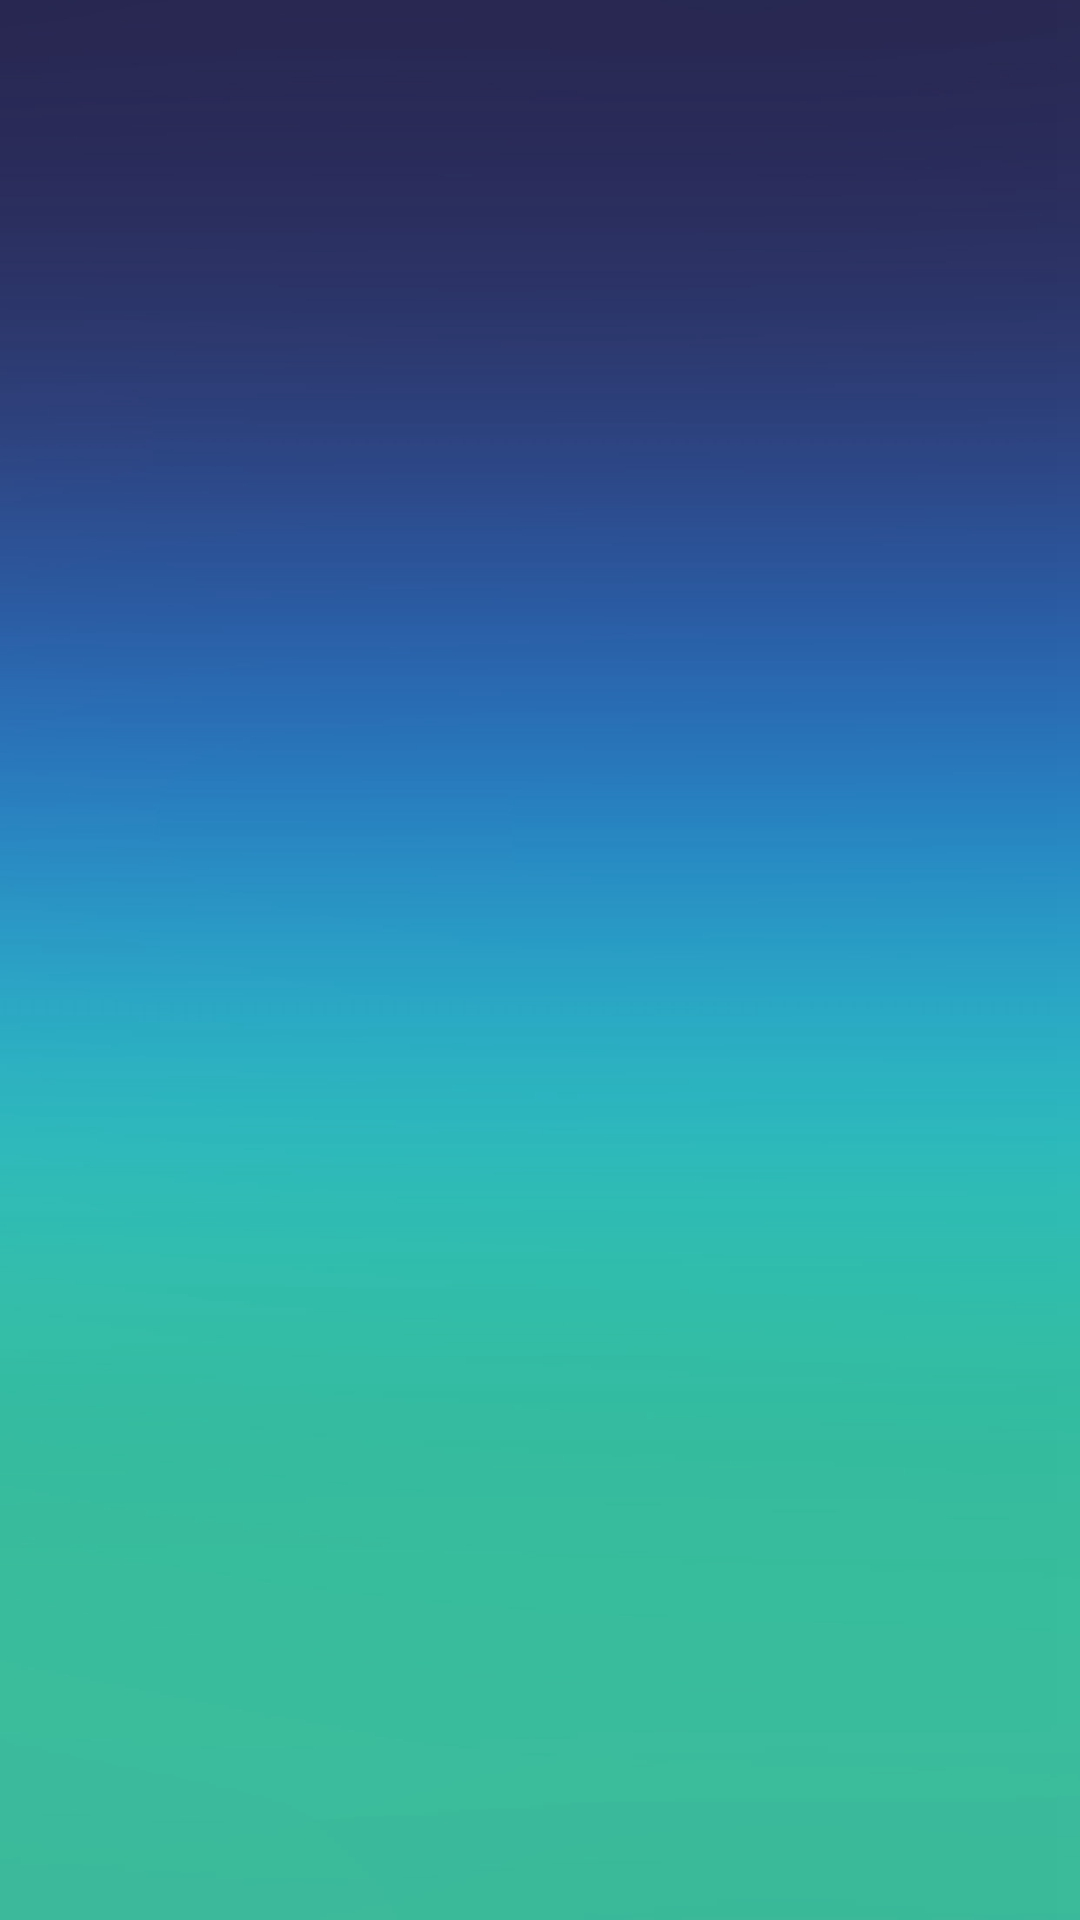 green blue wallpaper  wallpaper.wiki-Nintendo-Green-Blue-Gradation-Blur-iphone-6-wallpaper ...